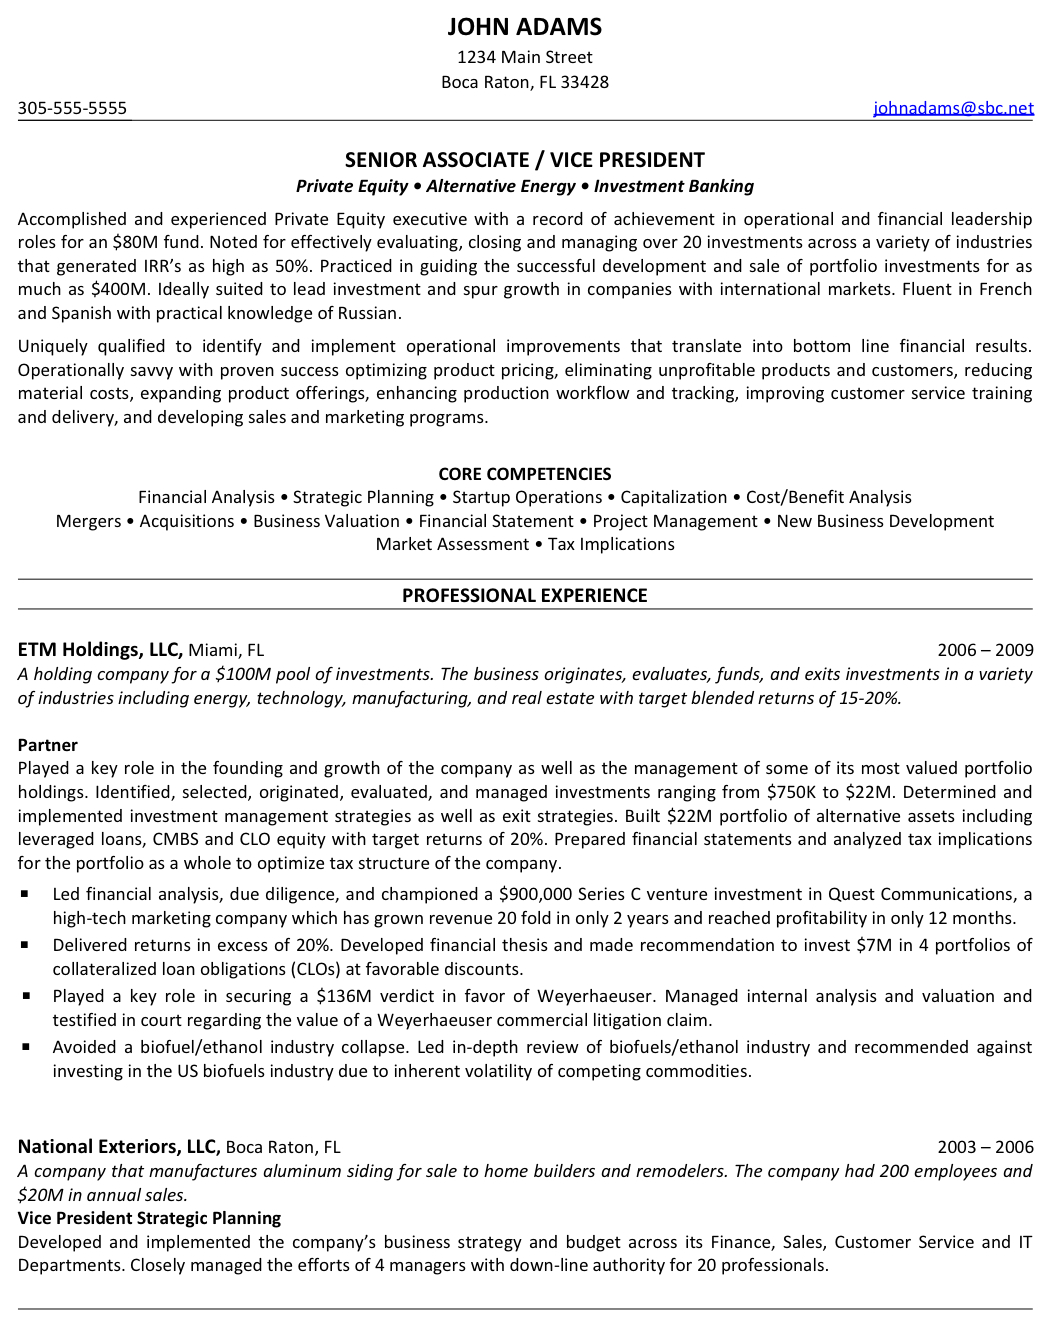 career advisor resumes - Template